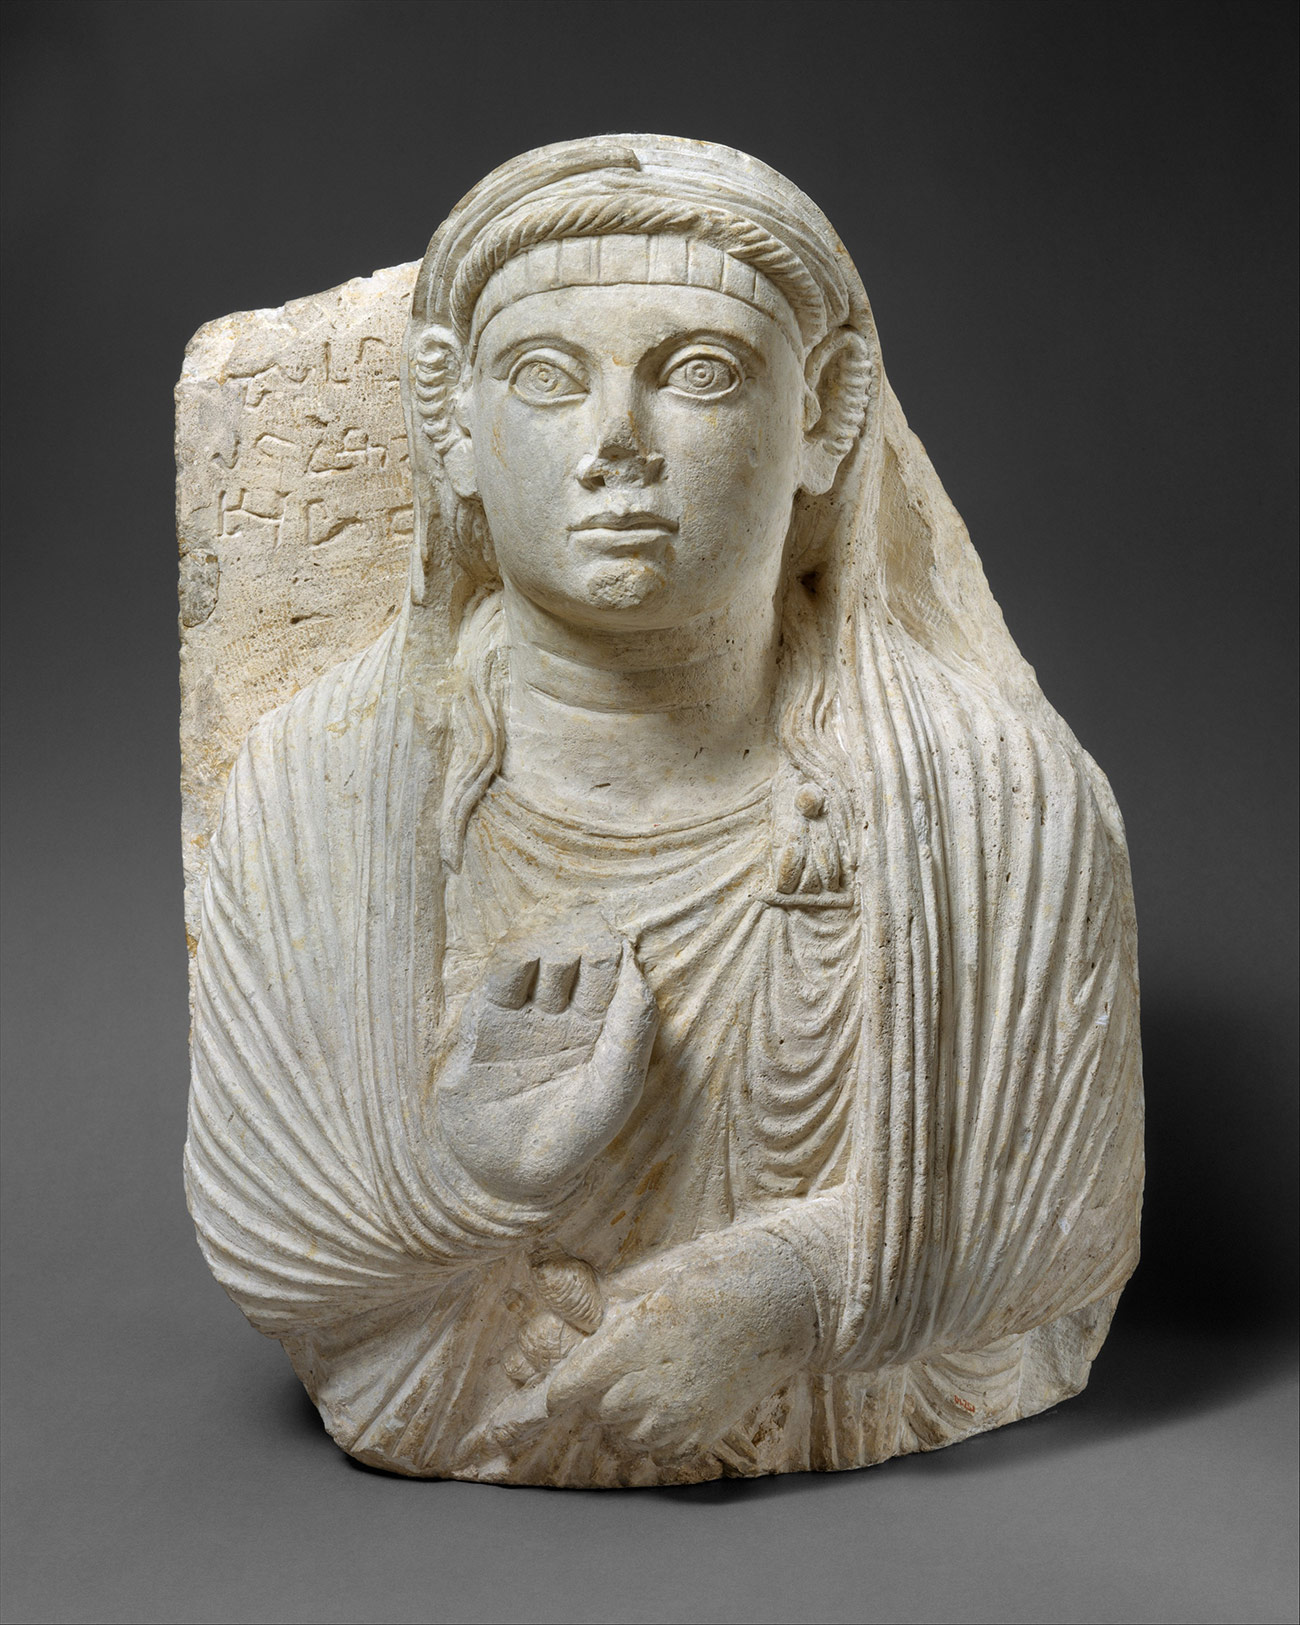 Bust of a woman dressed in a draped garment, pinned at the left shoulder with an elaborate brooch, who faces directly towards us